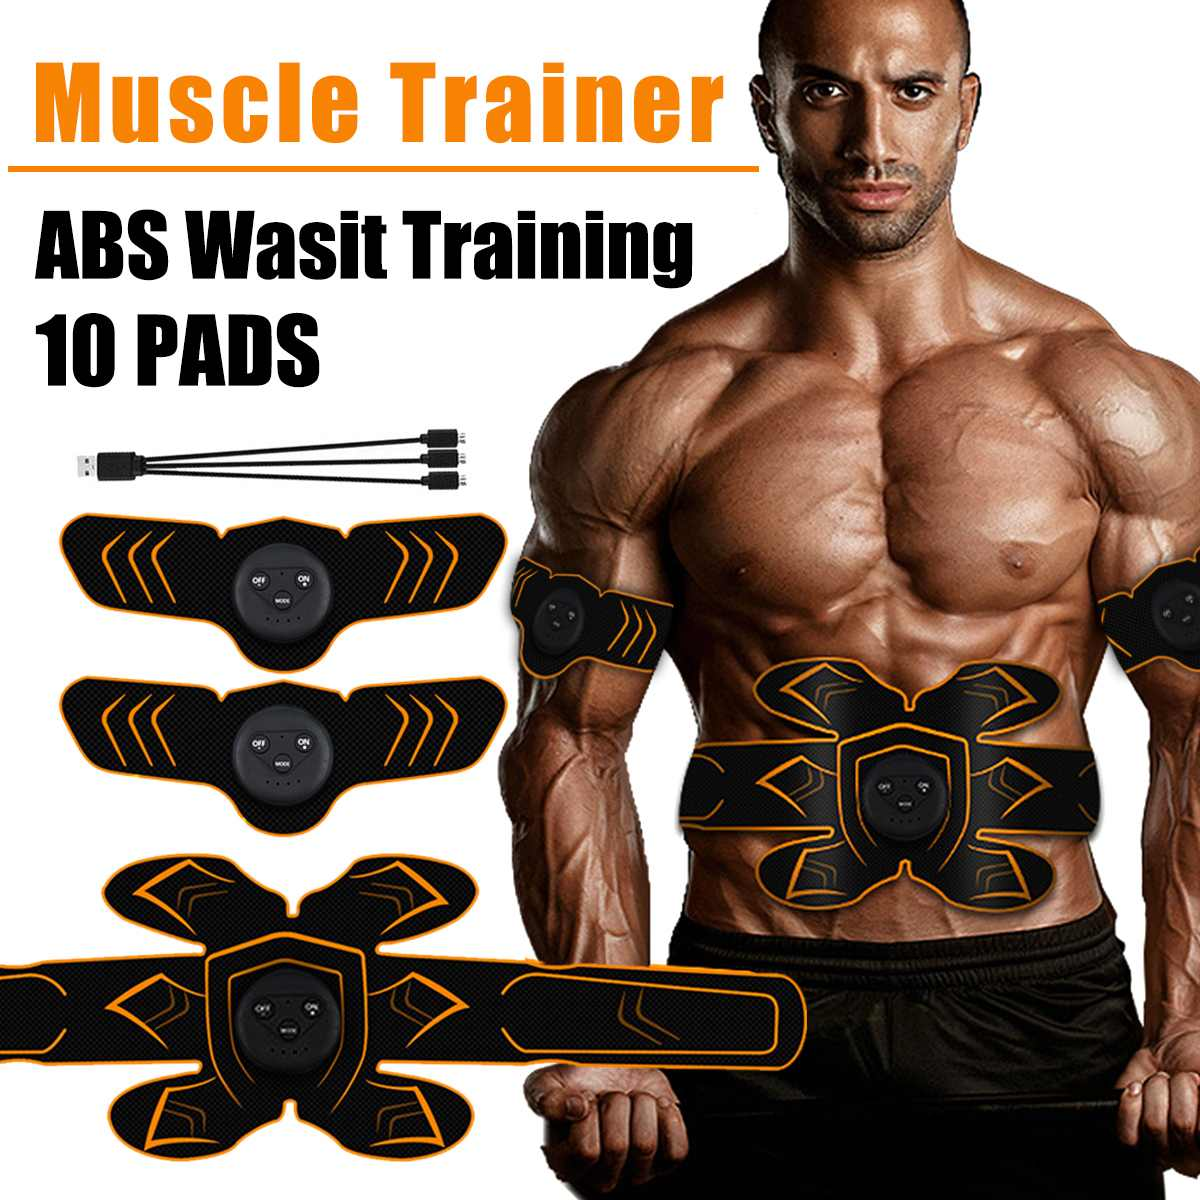 Muscle-Training-Gear Toner-Ems Stimulator Abdominal Body-Exercise ABS USB Rechargeable